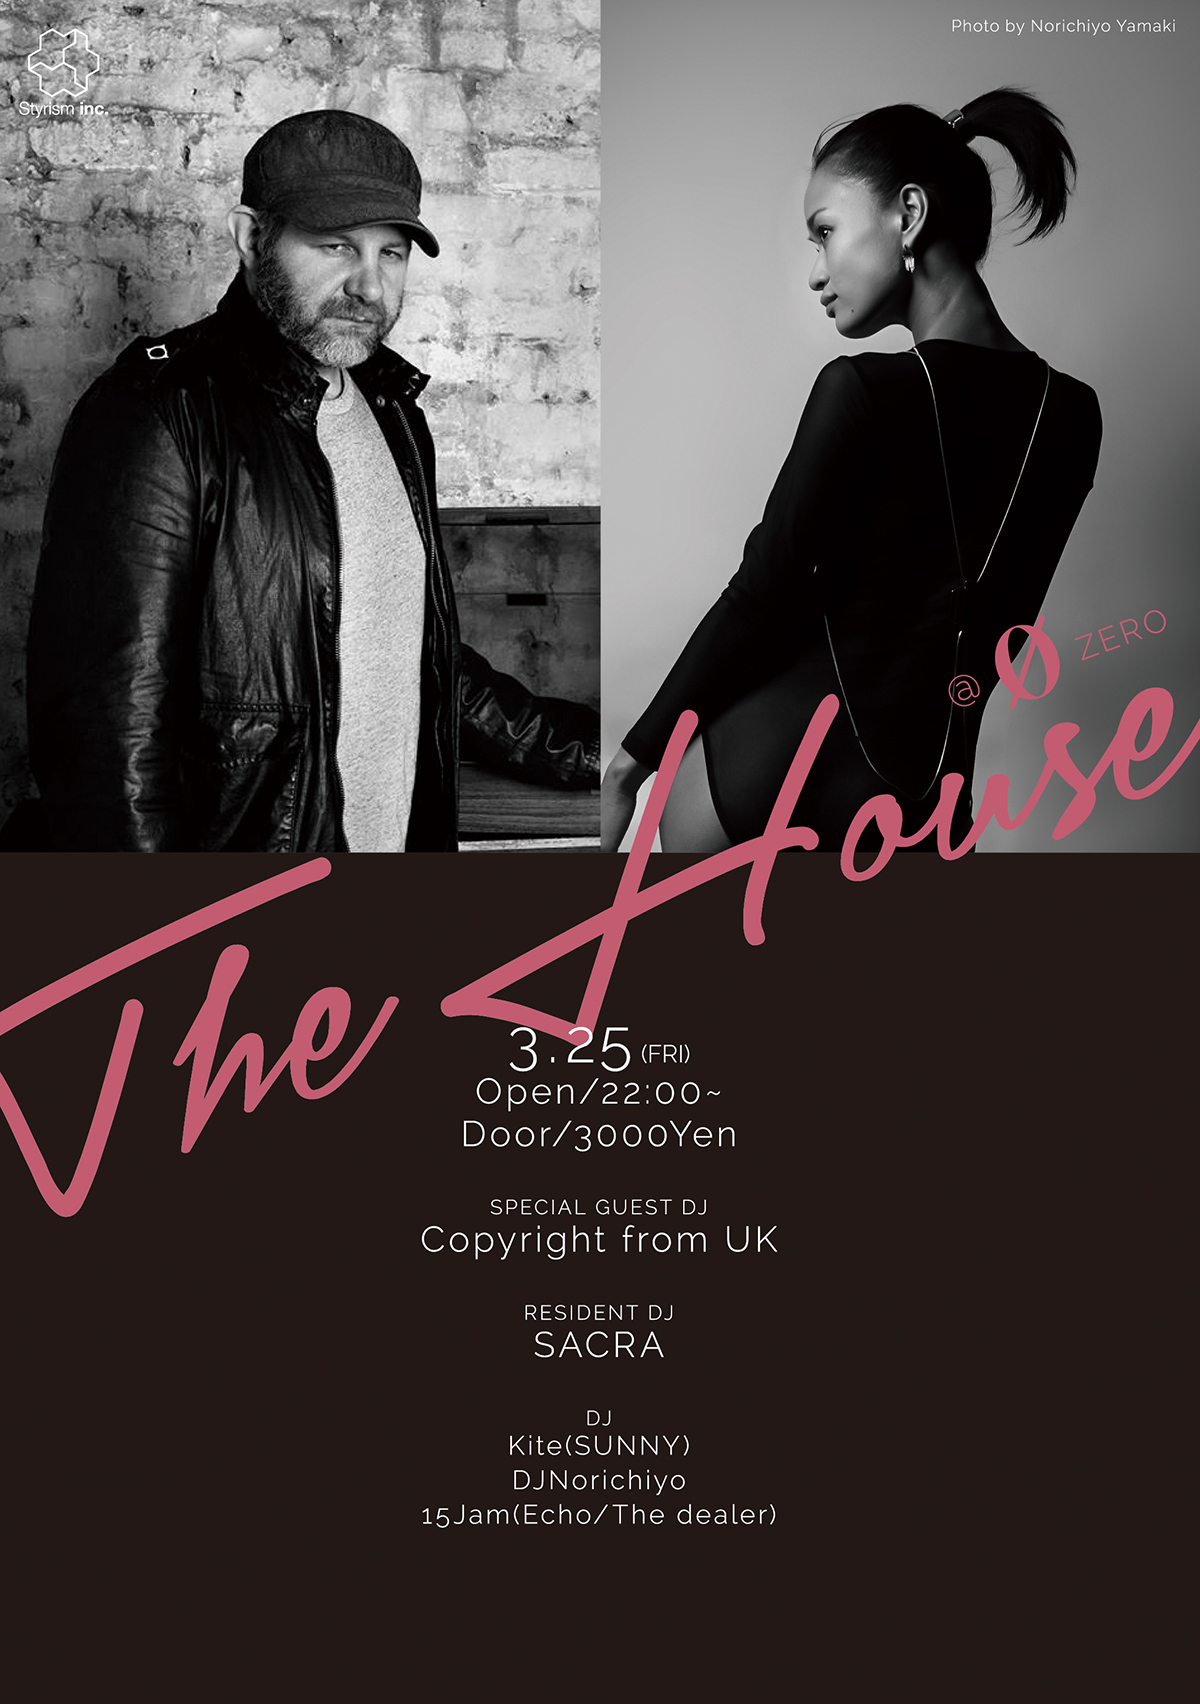 THE HOUSE @ZERO SPECIAL GUEST DJ Copyright from UK